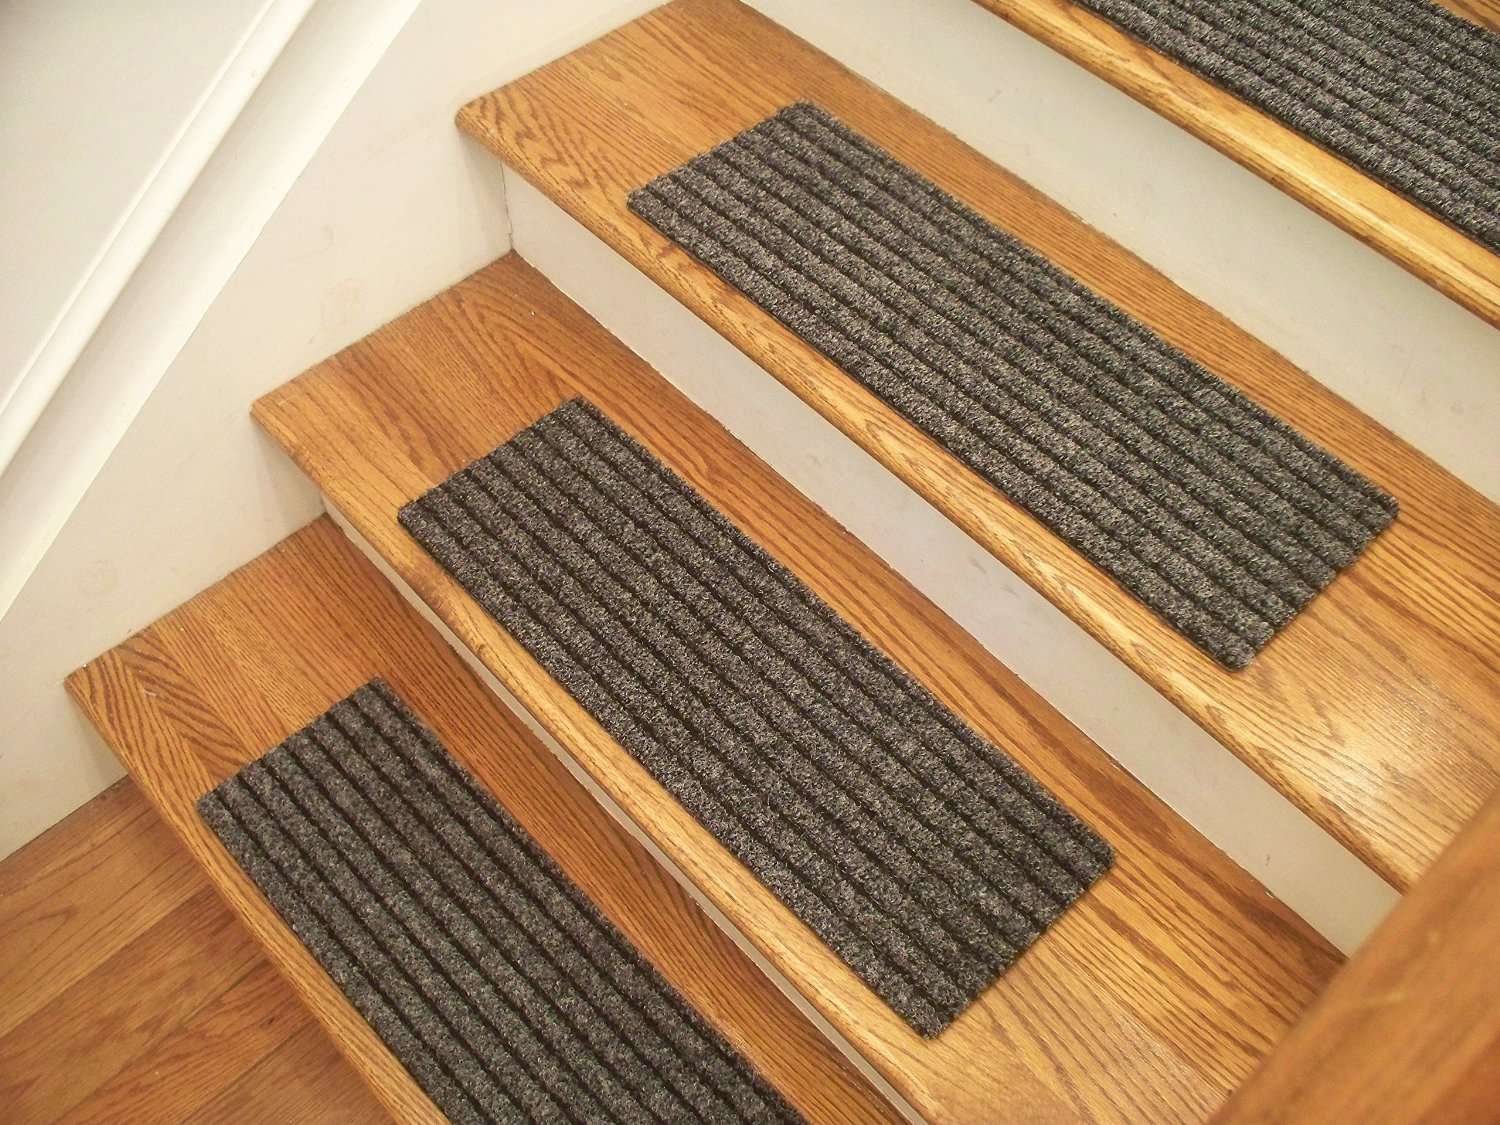 """Essential Carpet Stair Treads - Style: Classy - Color: Gray and Black - Size: 24"""" x 8"""" - Set of 15"""